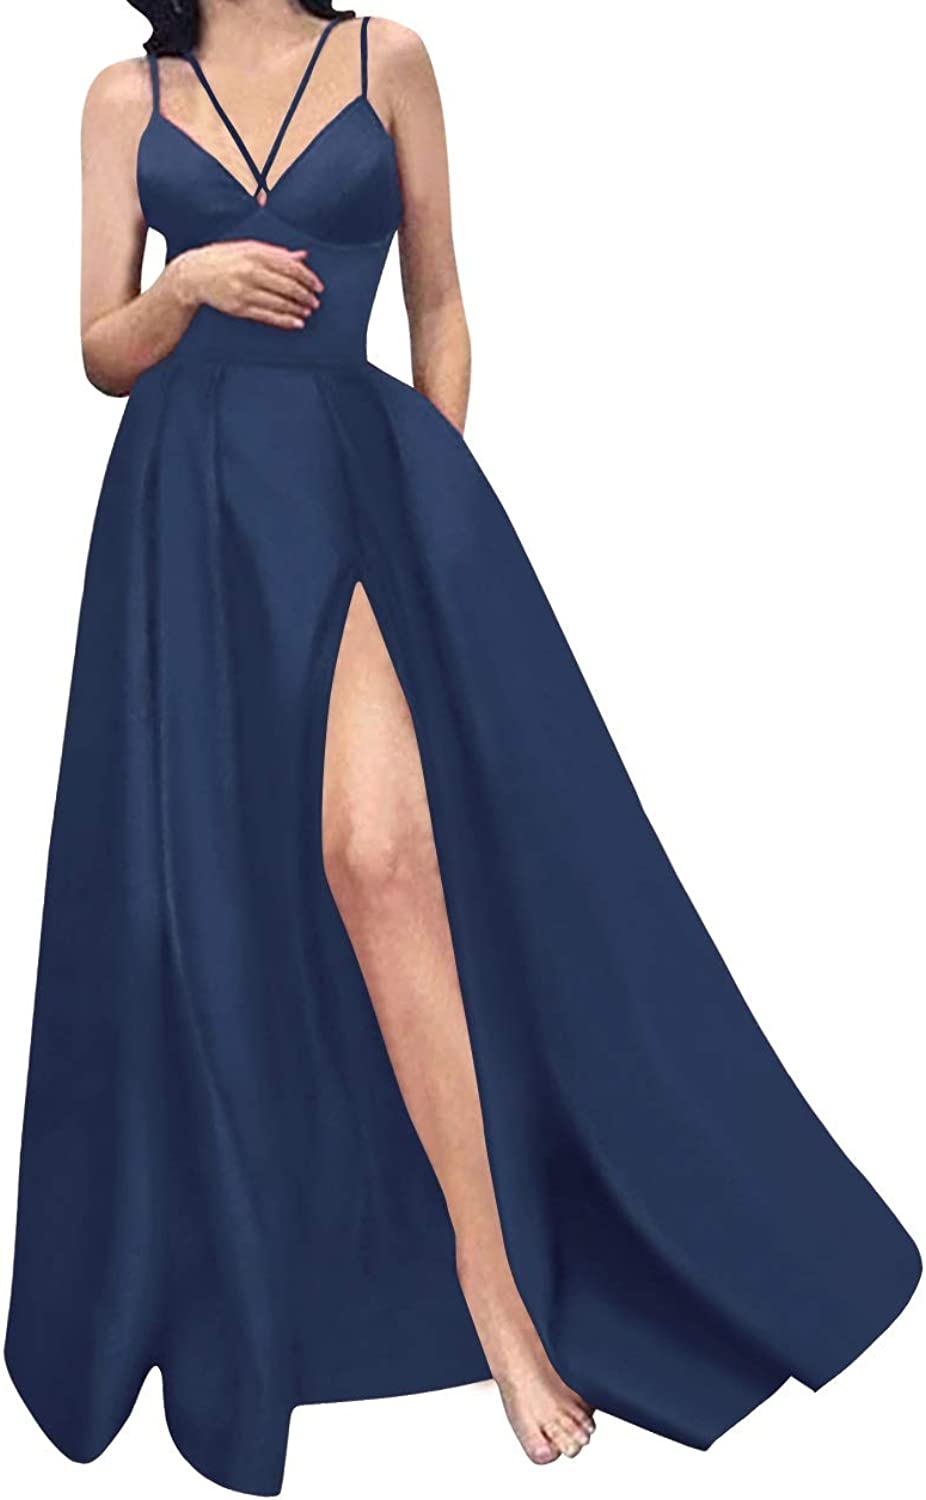 MorySong Women High Split Spaghetti Straps ALine Prom Evening Dress with Pockets